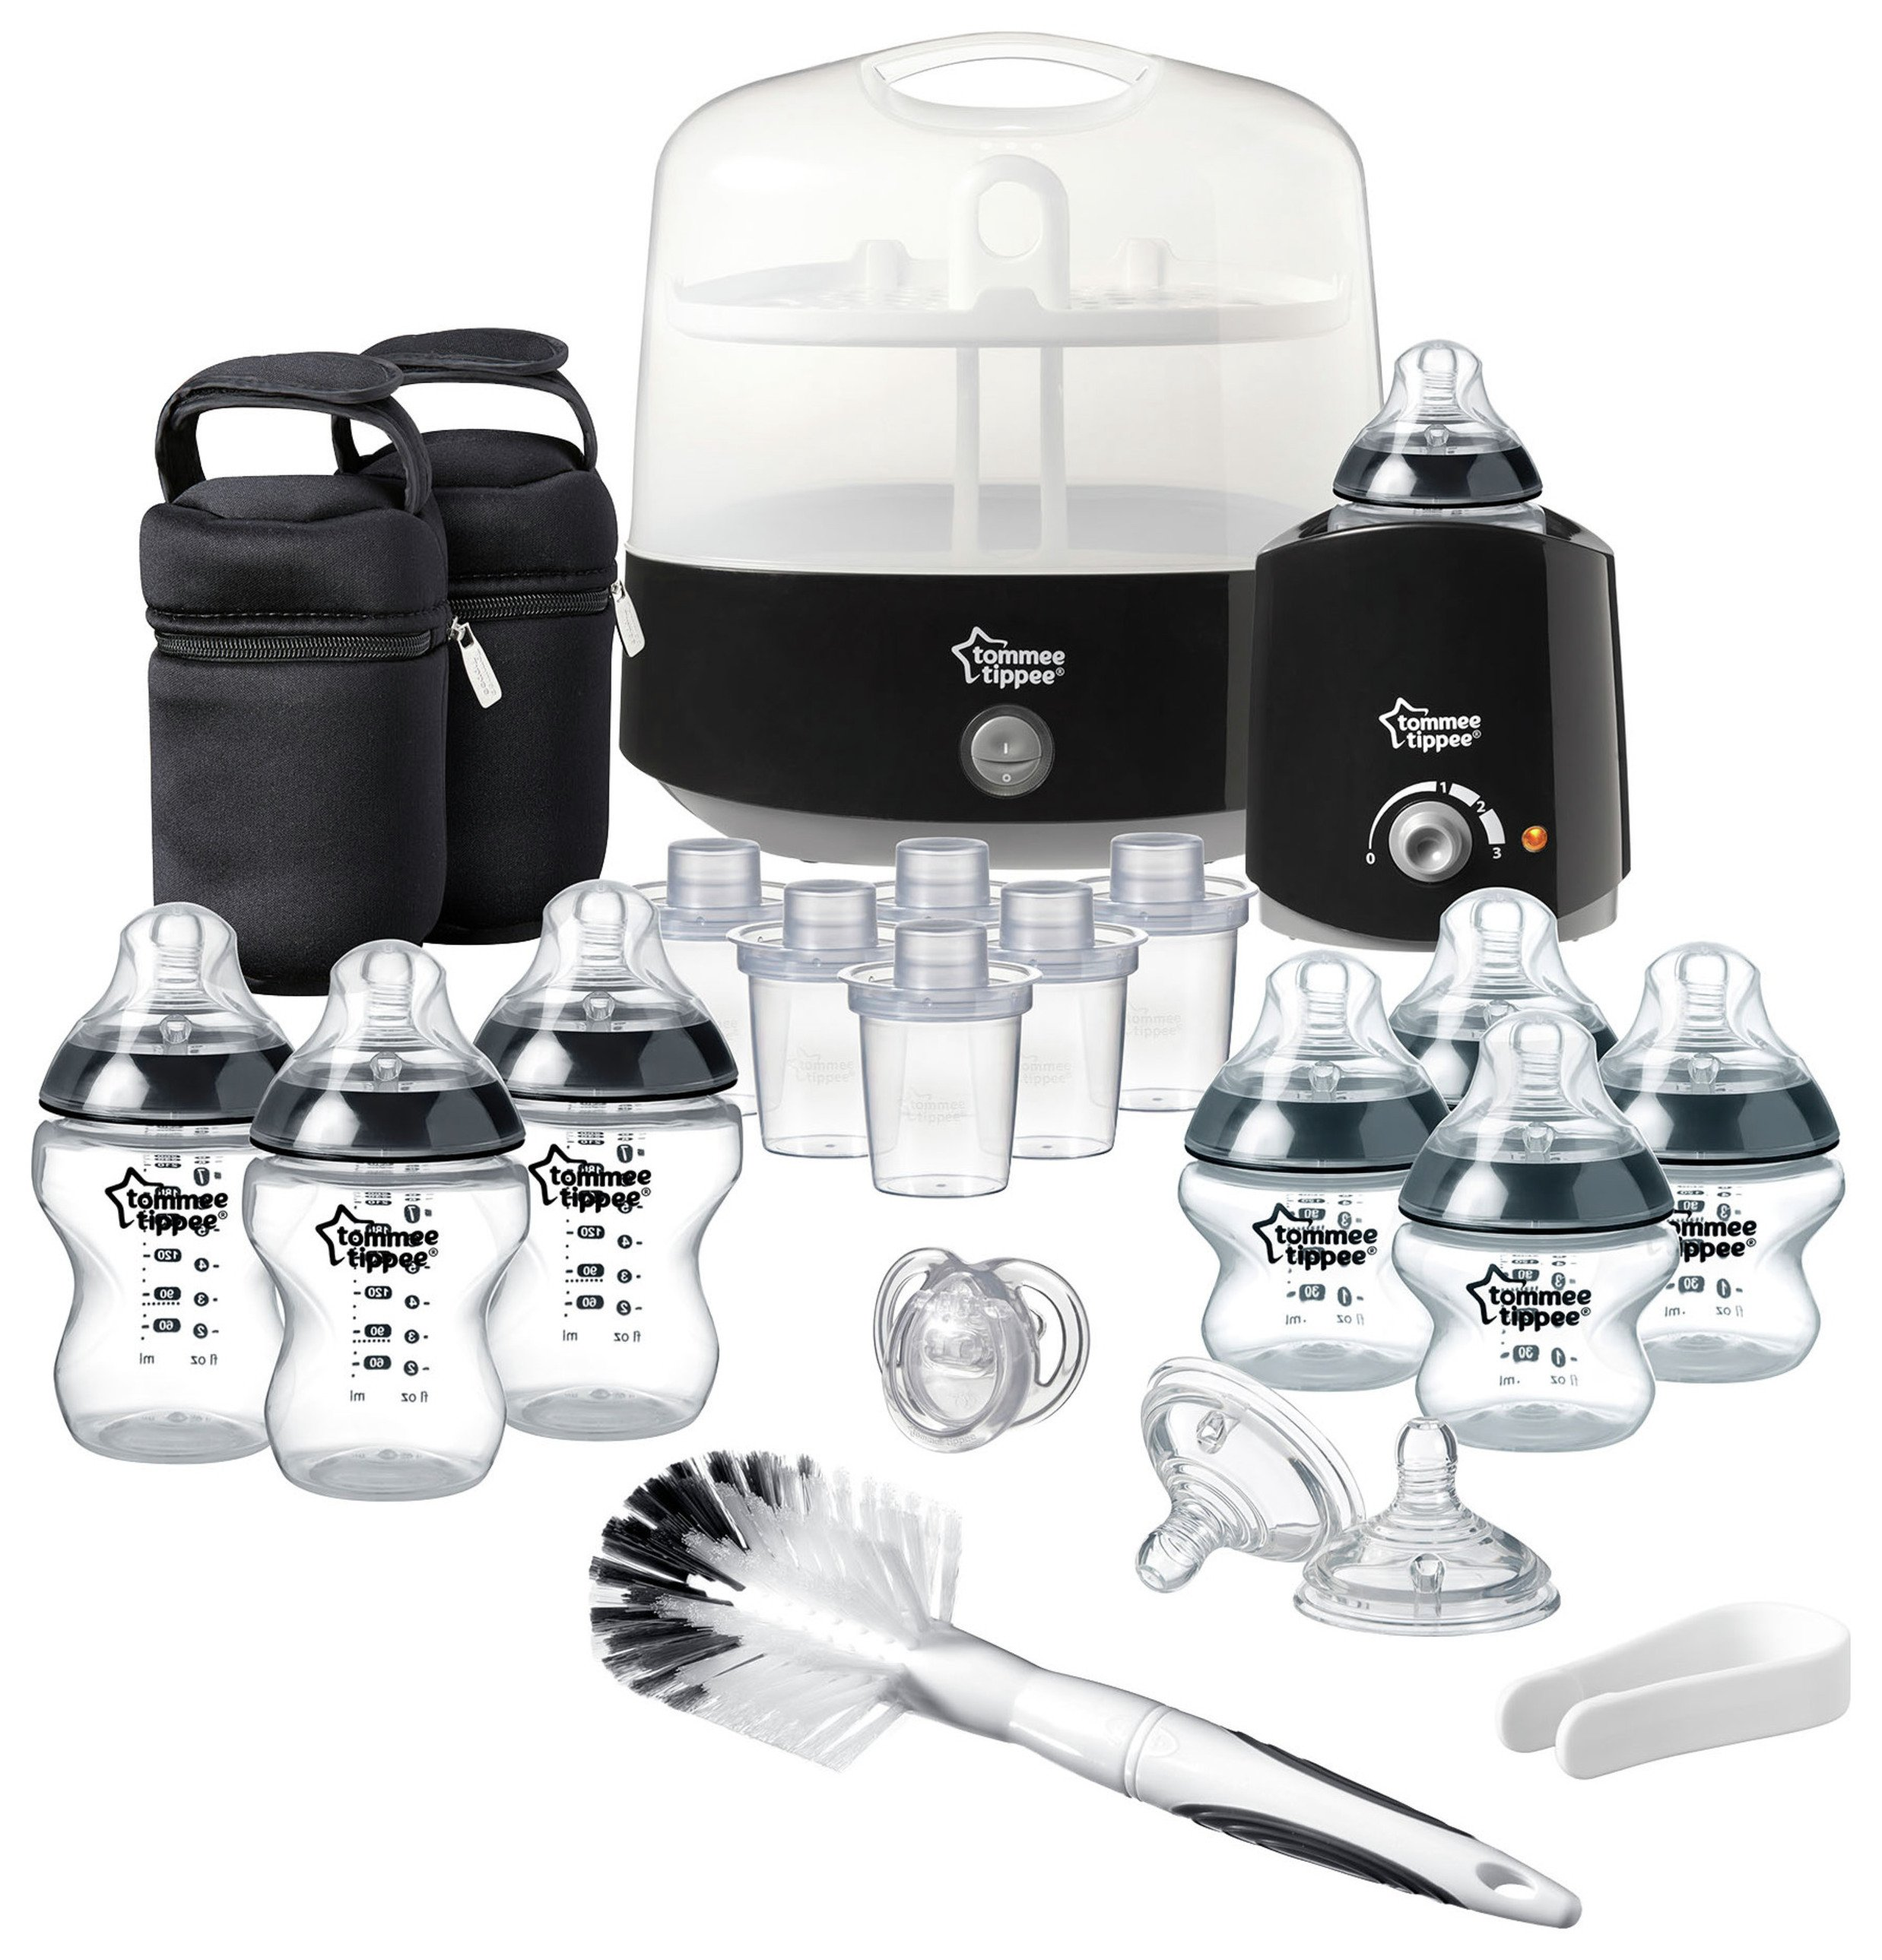 Image of Black Tommee Tippee Essentials Kit.